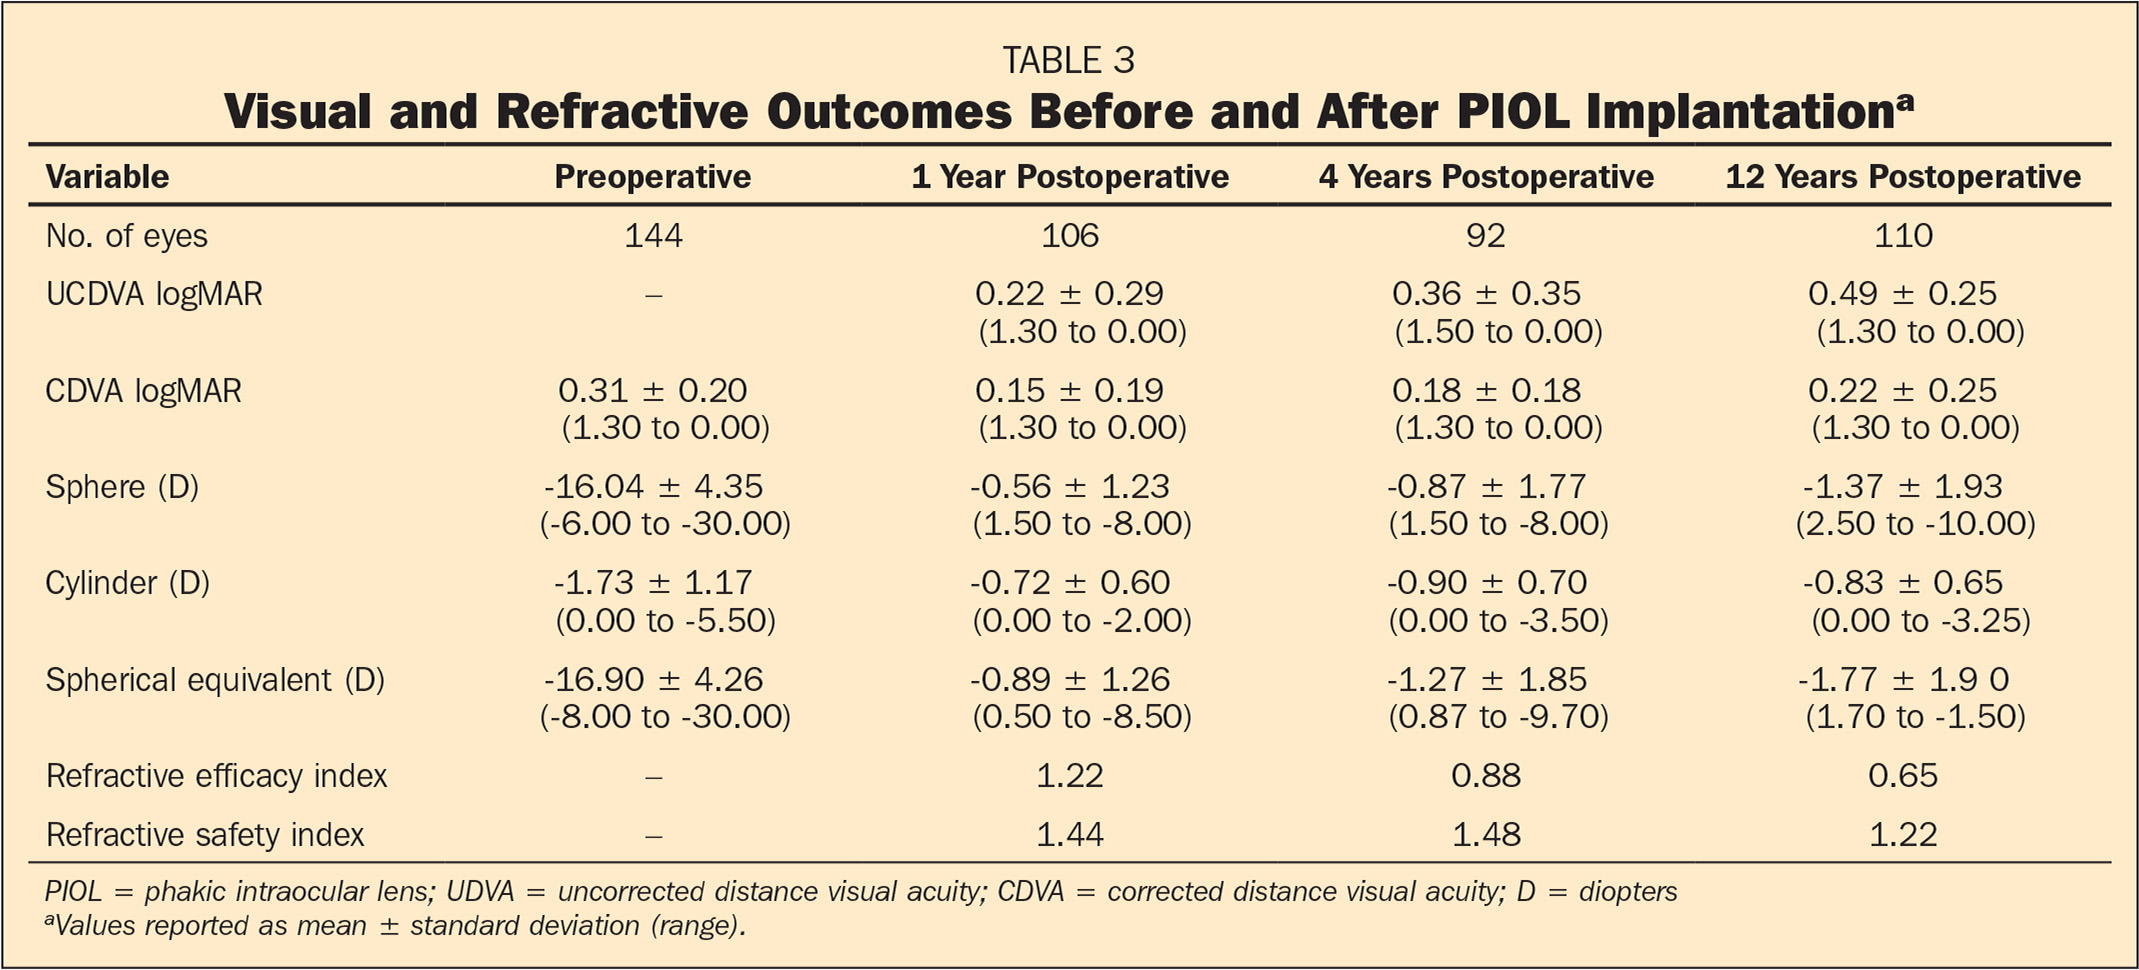 Visual and Refractive Outcomes Before and After PIOL Implantationa